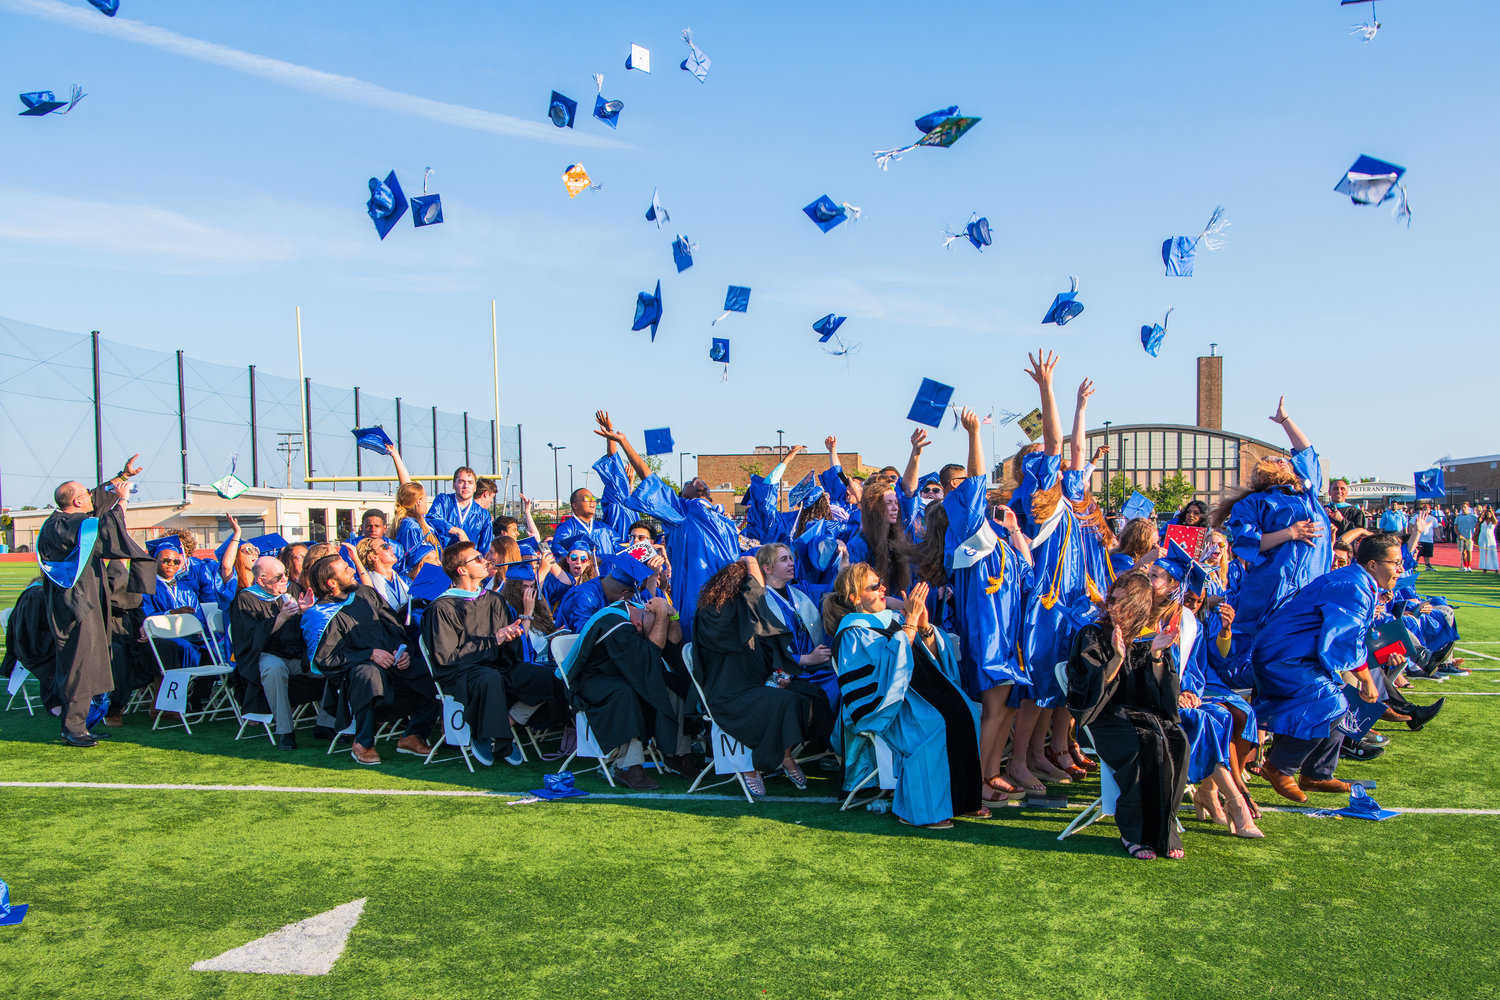 The Class of 2019's 347 graduates tossed their mortarboards skyward at the conclusion of the 96th annual commencement ceremony on June 26.